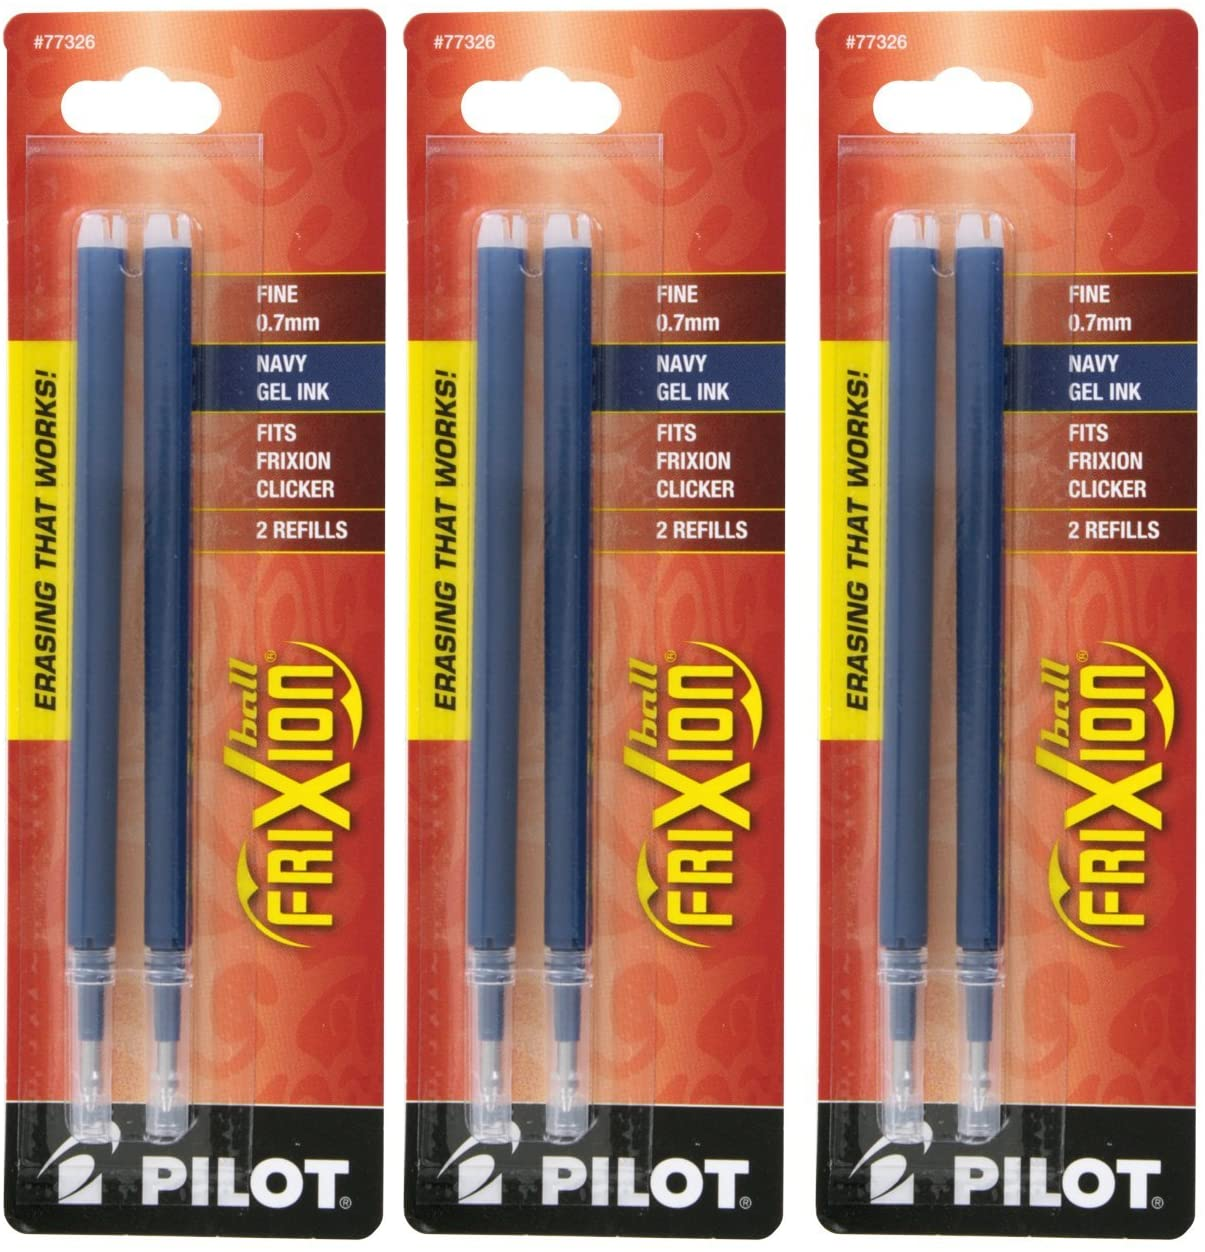 Pilot Frixion Gel Ink Pen All items free shipping Inventory cleanup selling sale Refills Blue Point I Fine 0.7mm Navy